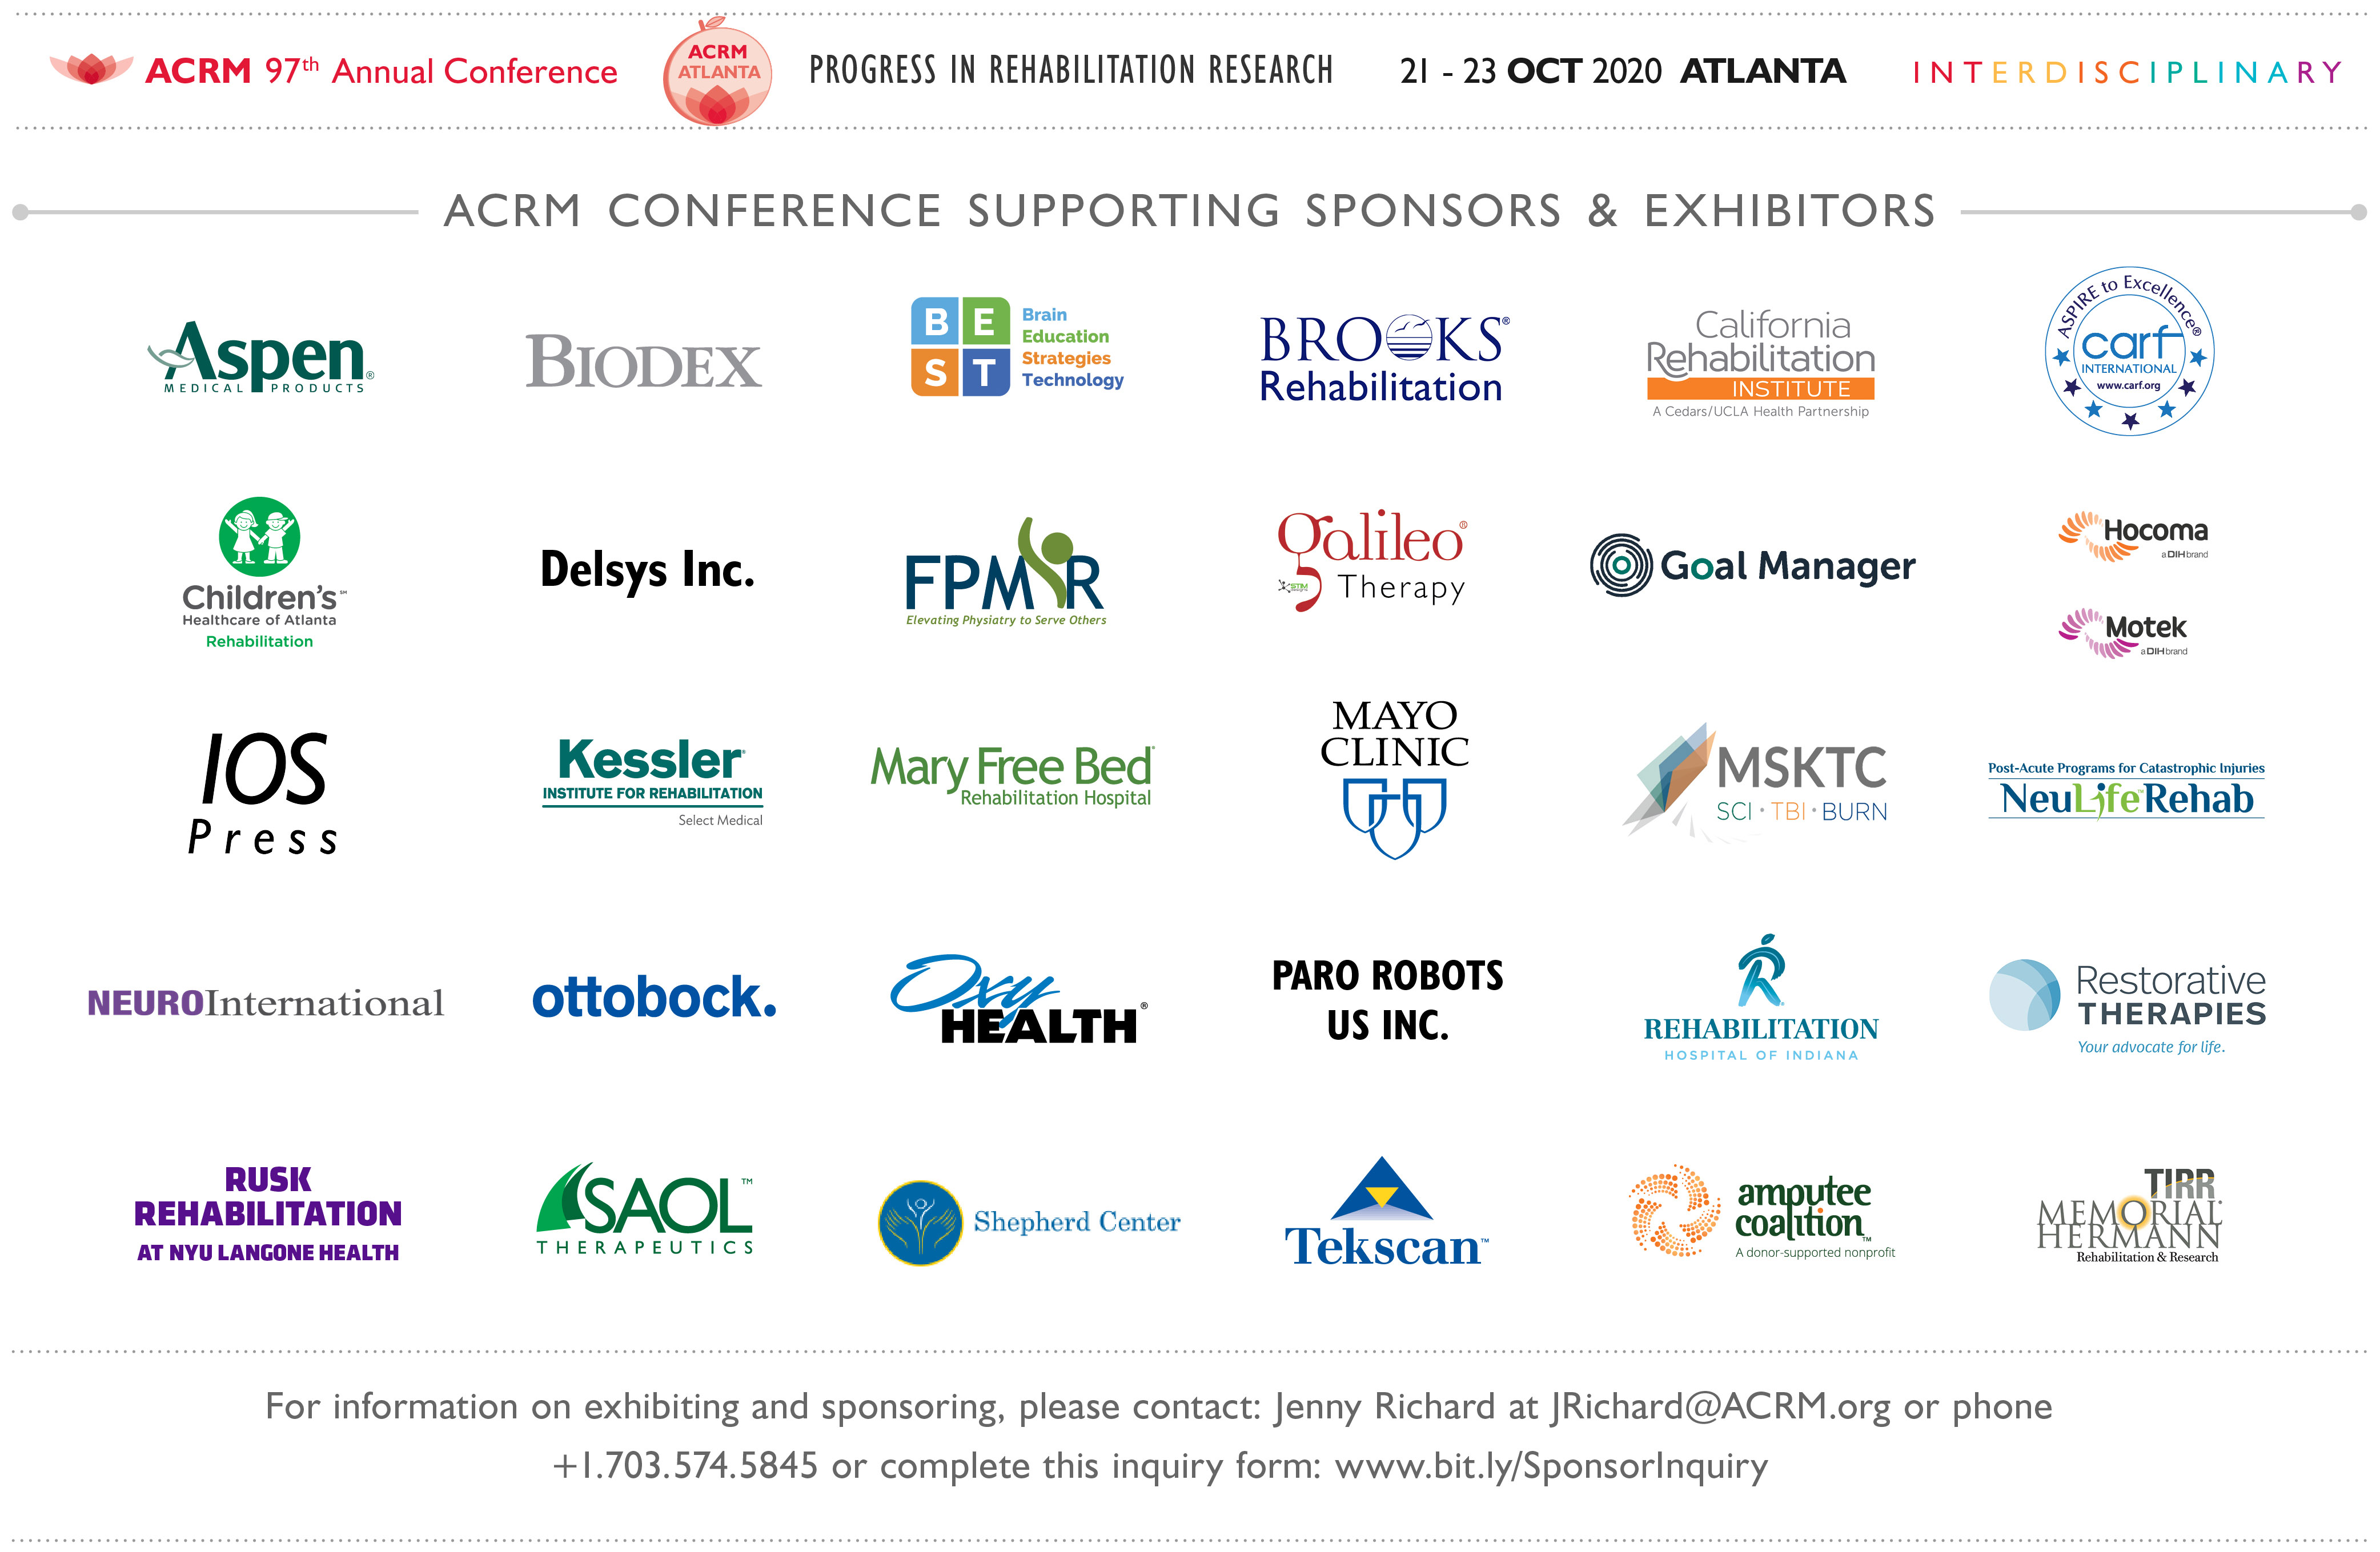 ACRM 2020 Conference Exhibitors & Sponsors